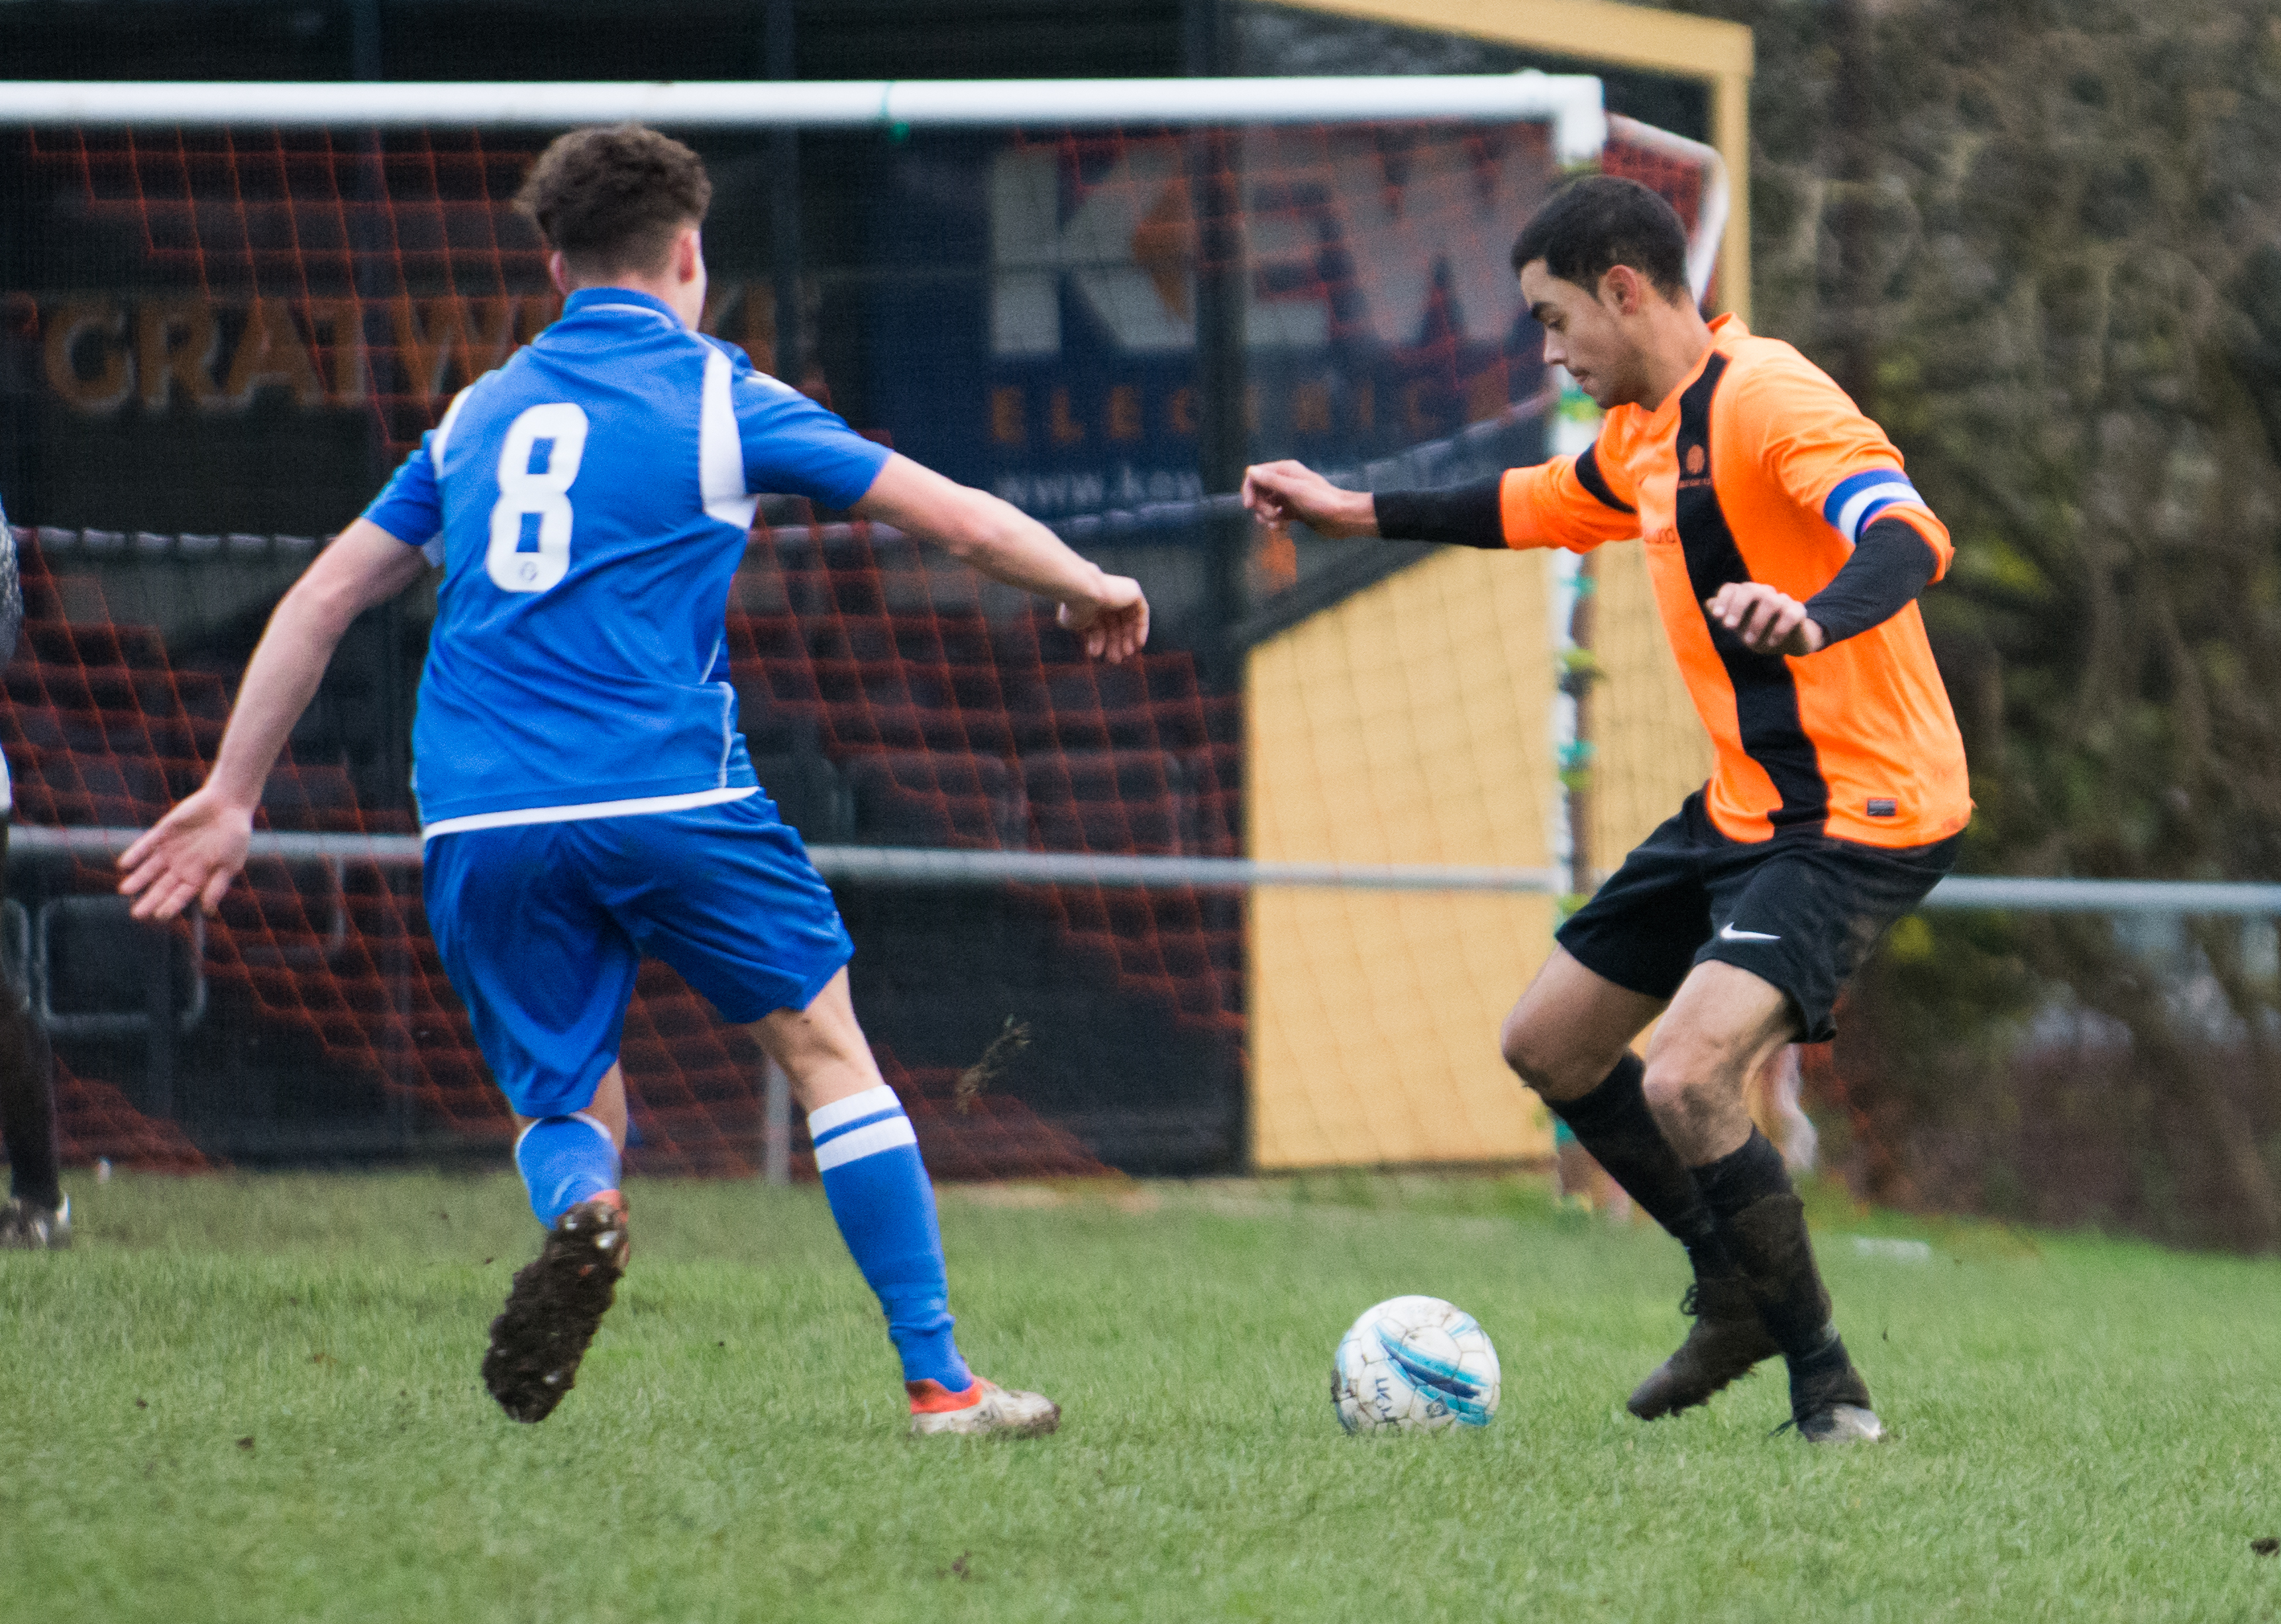 Mile Oak Res vs Sidley United 09.12.17 28